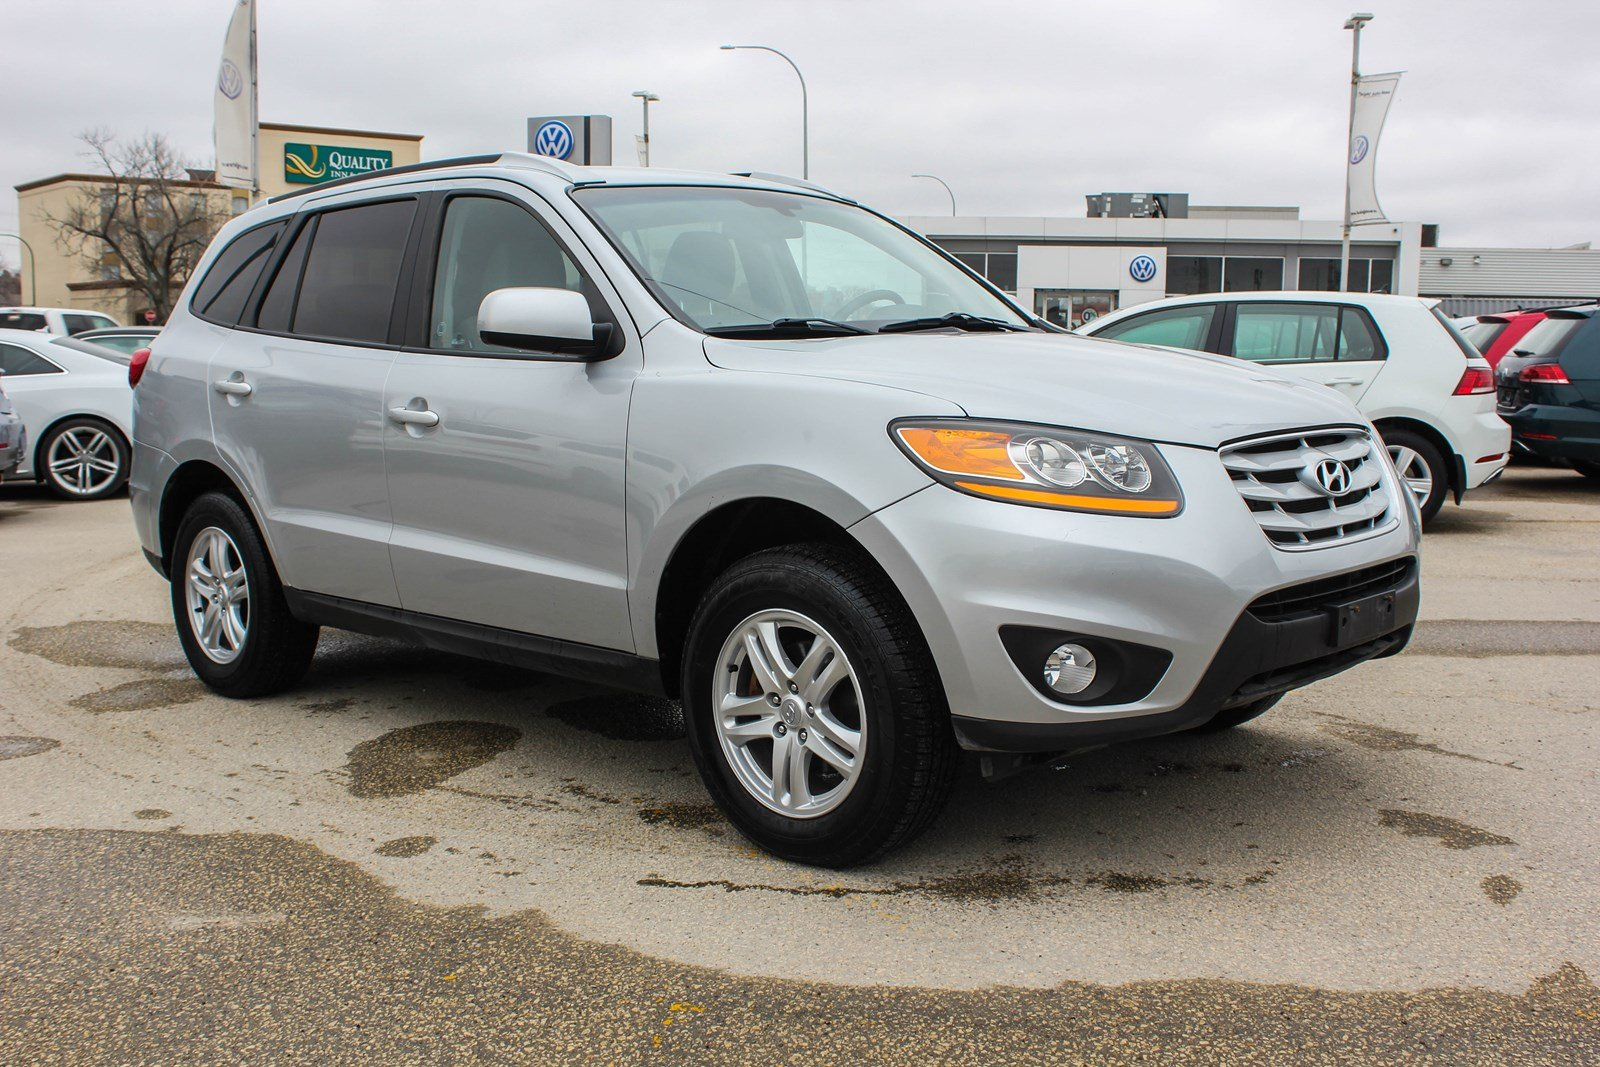 Pre-Owned 2010 Hyundai Santa Fe GL w/ Heated Seats